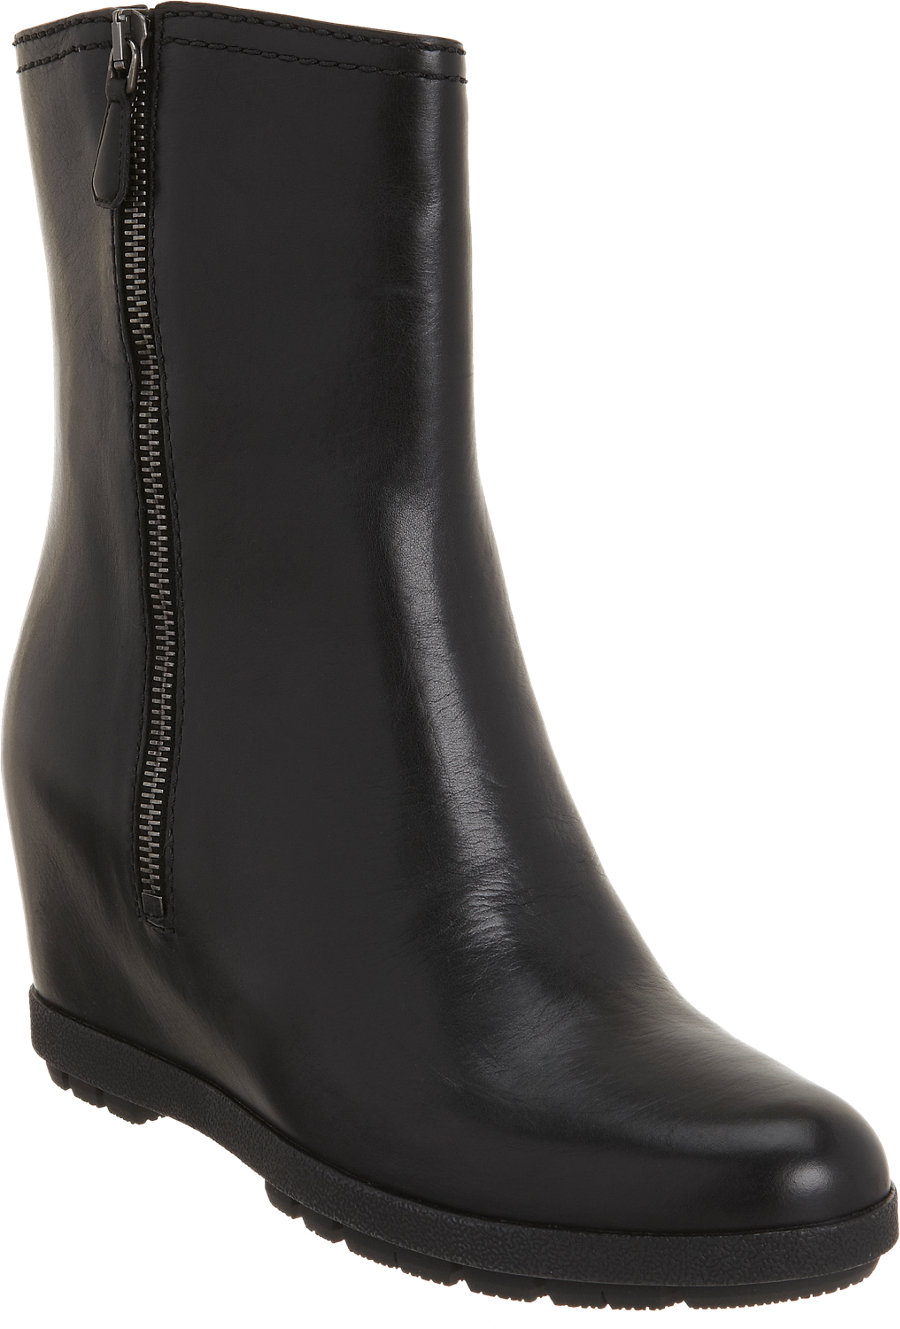 prada linea rossa wedge ankle boot in black lyst